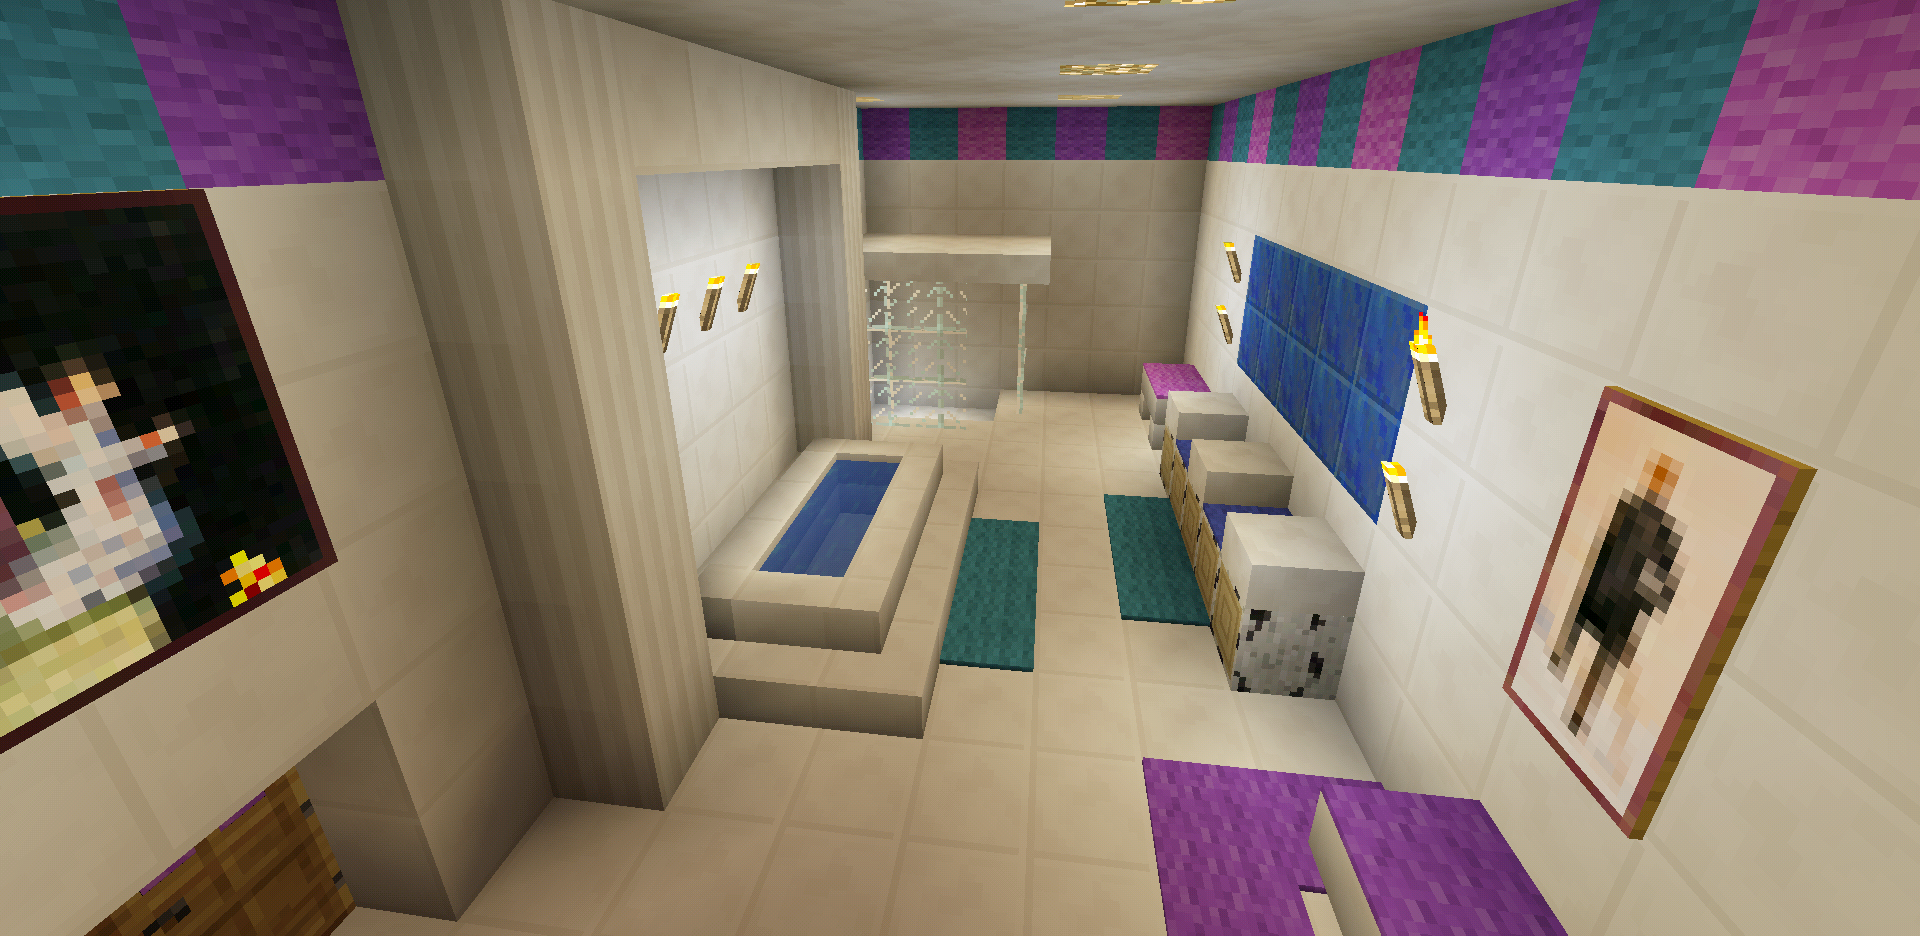 Minecraft Bathroom Pink Girl Wallpaper Wall Design Shower Sink